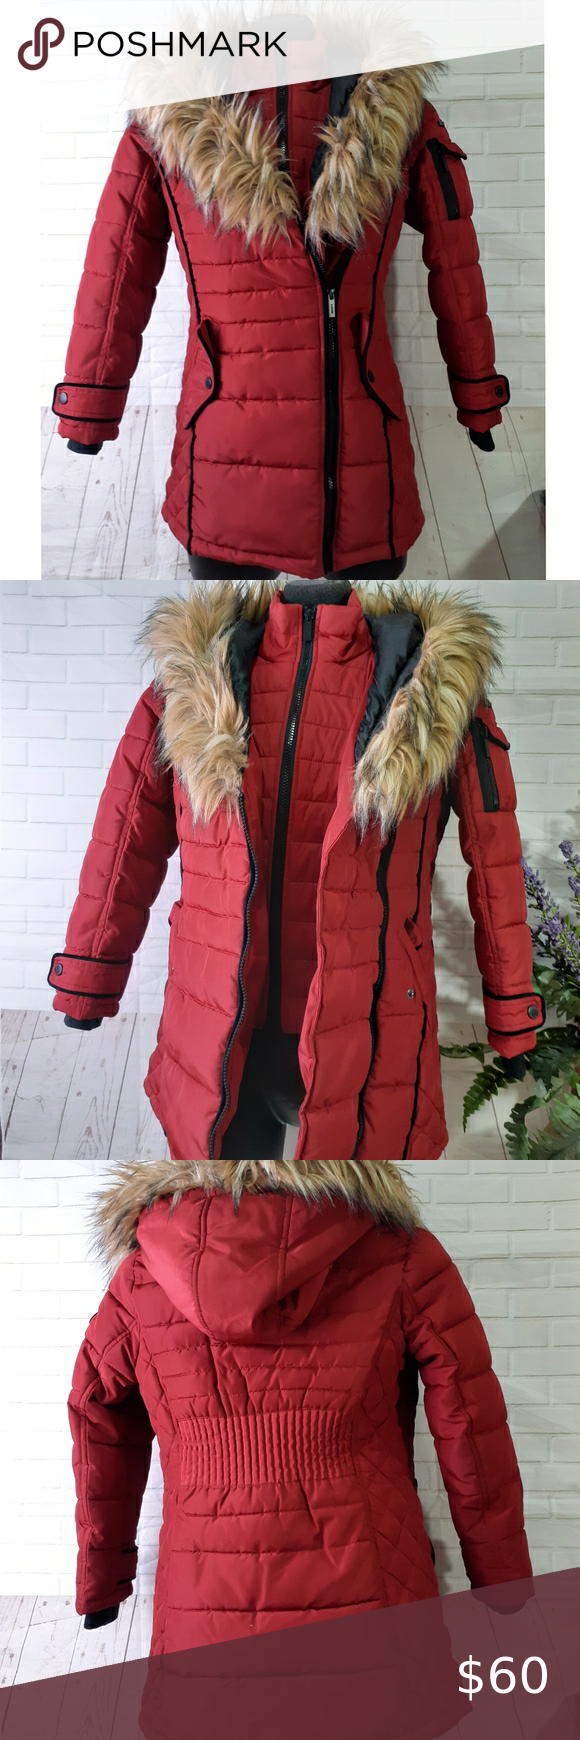 Dkny Hooded Packable Down Puffer Coat Size 7 8 Down Puffer Coat Puffer Coat Clothes Design [ 1740 x 580 Pixel ]